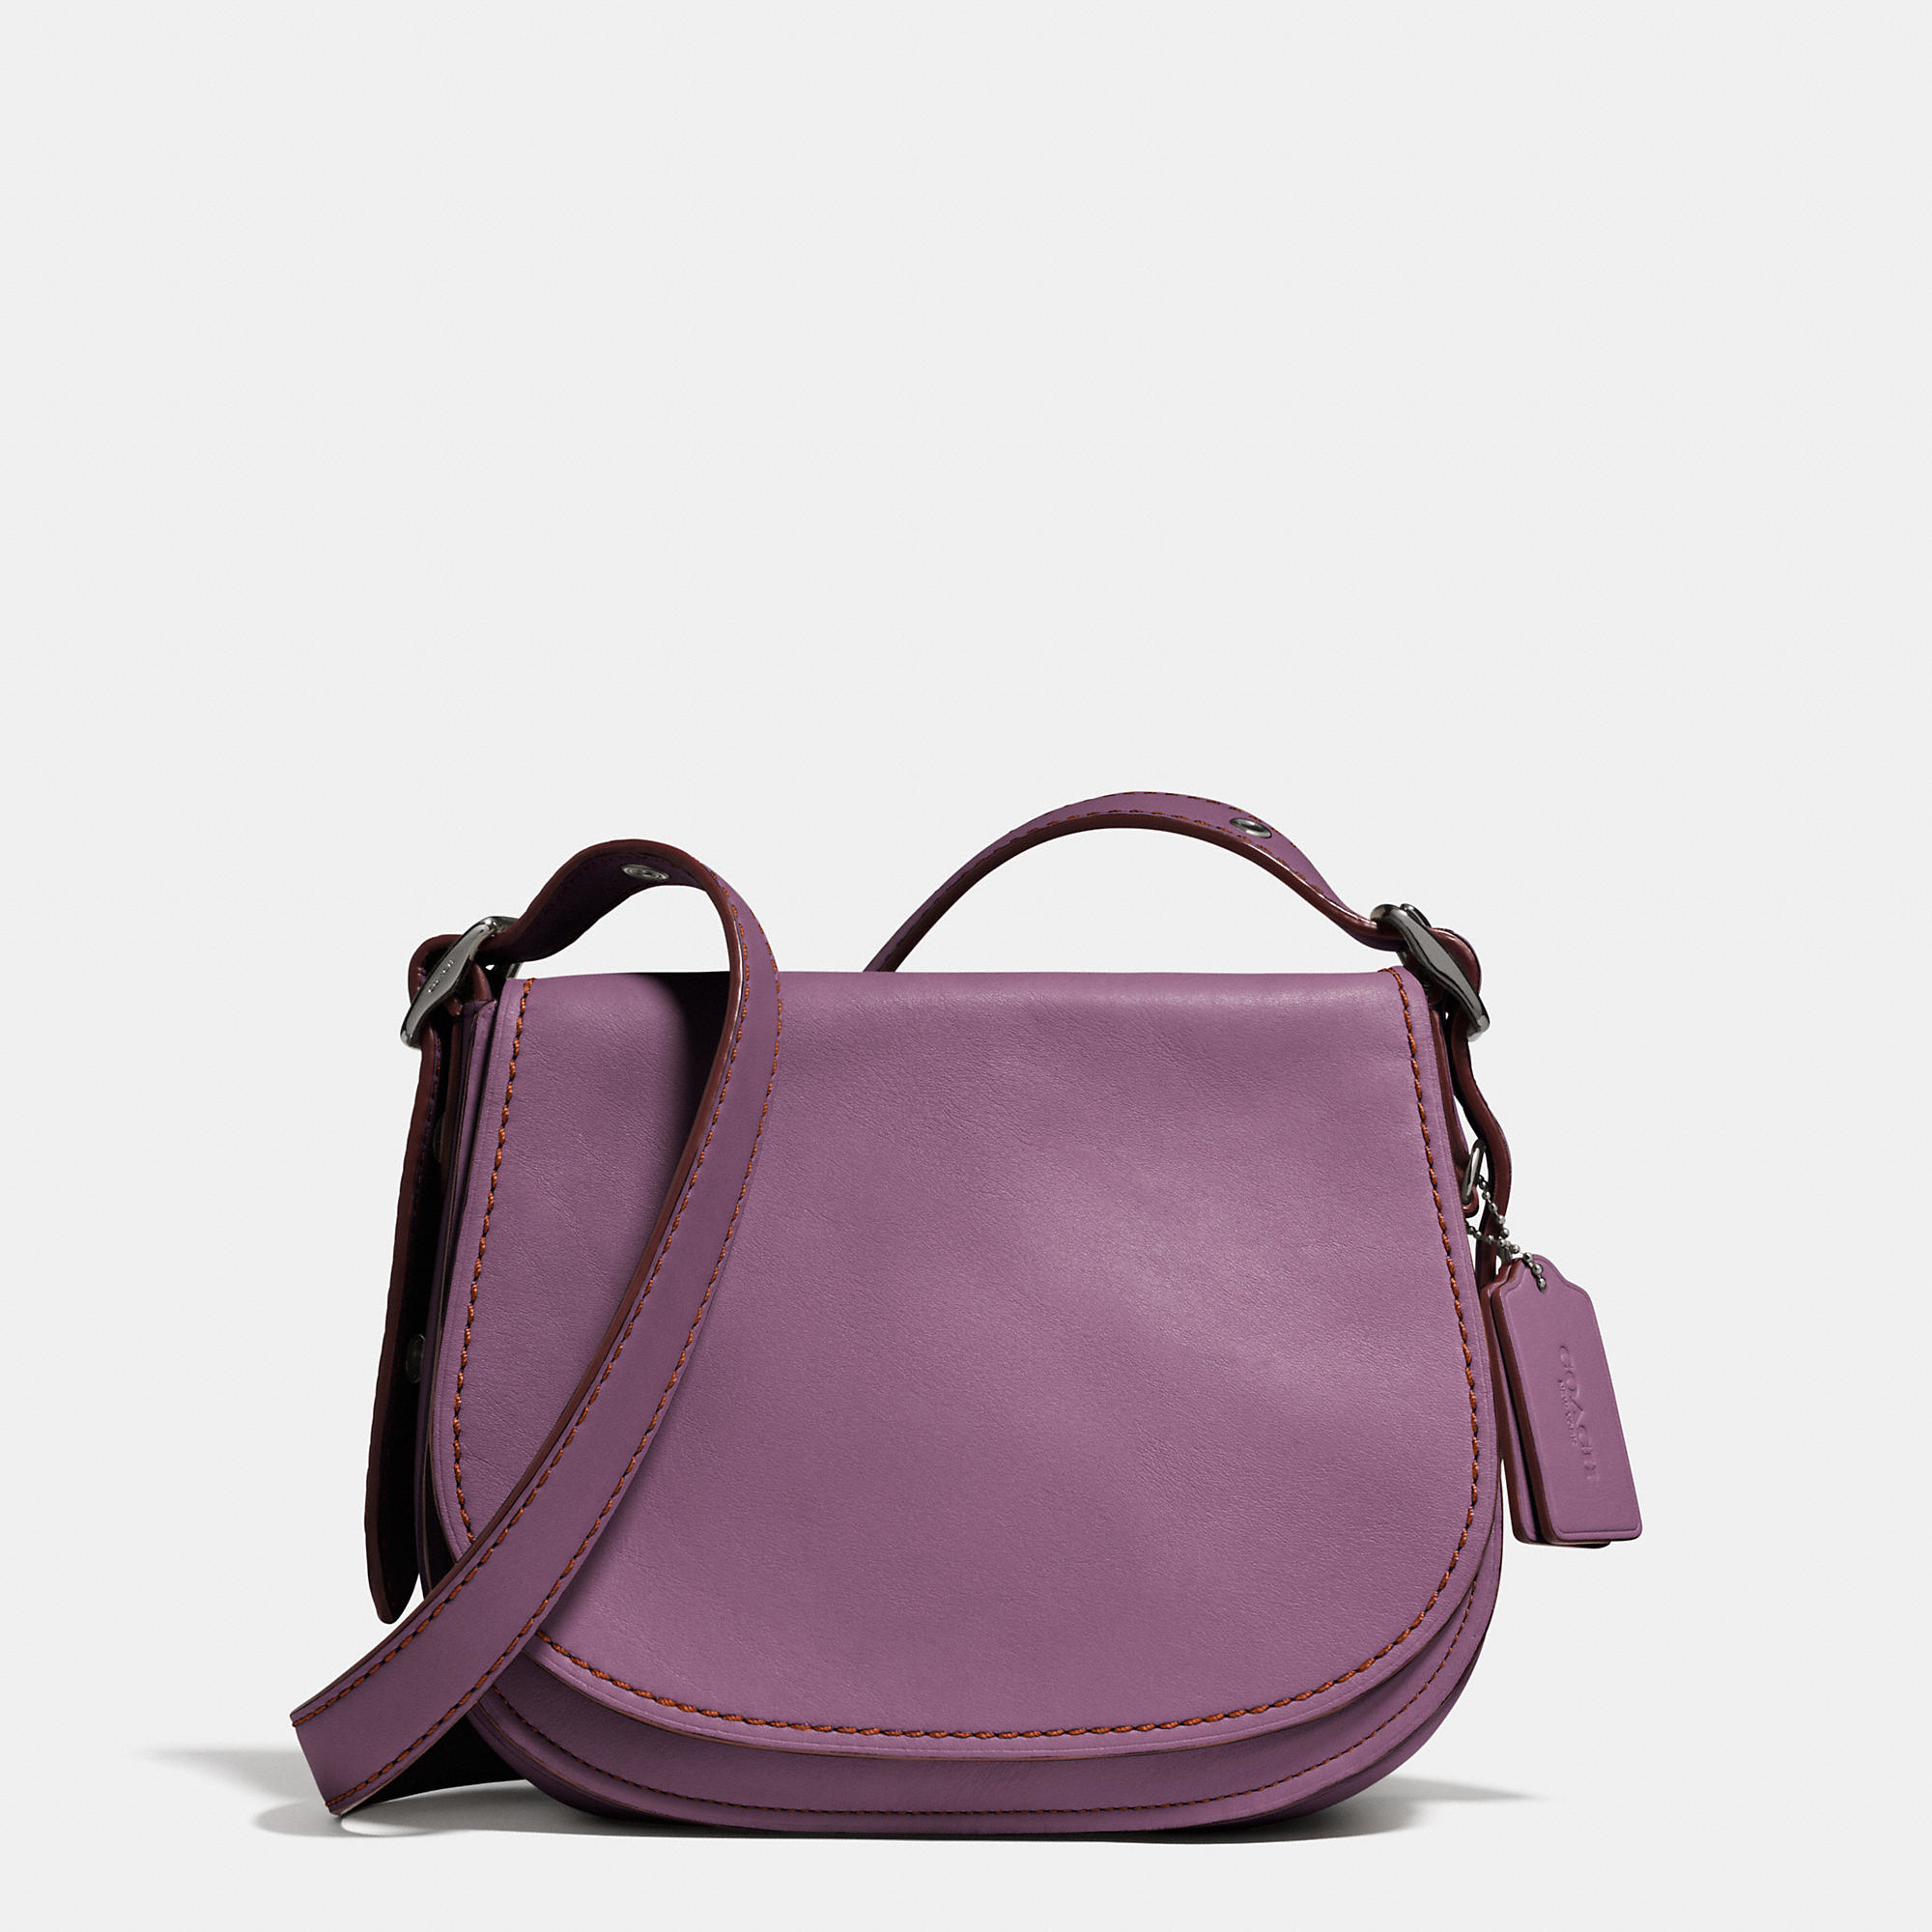 Coach 23 Leather Saddle Bag in Purple | Lyst